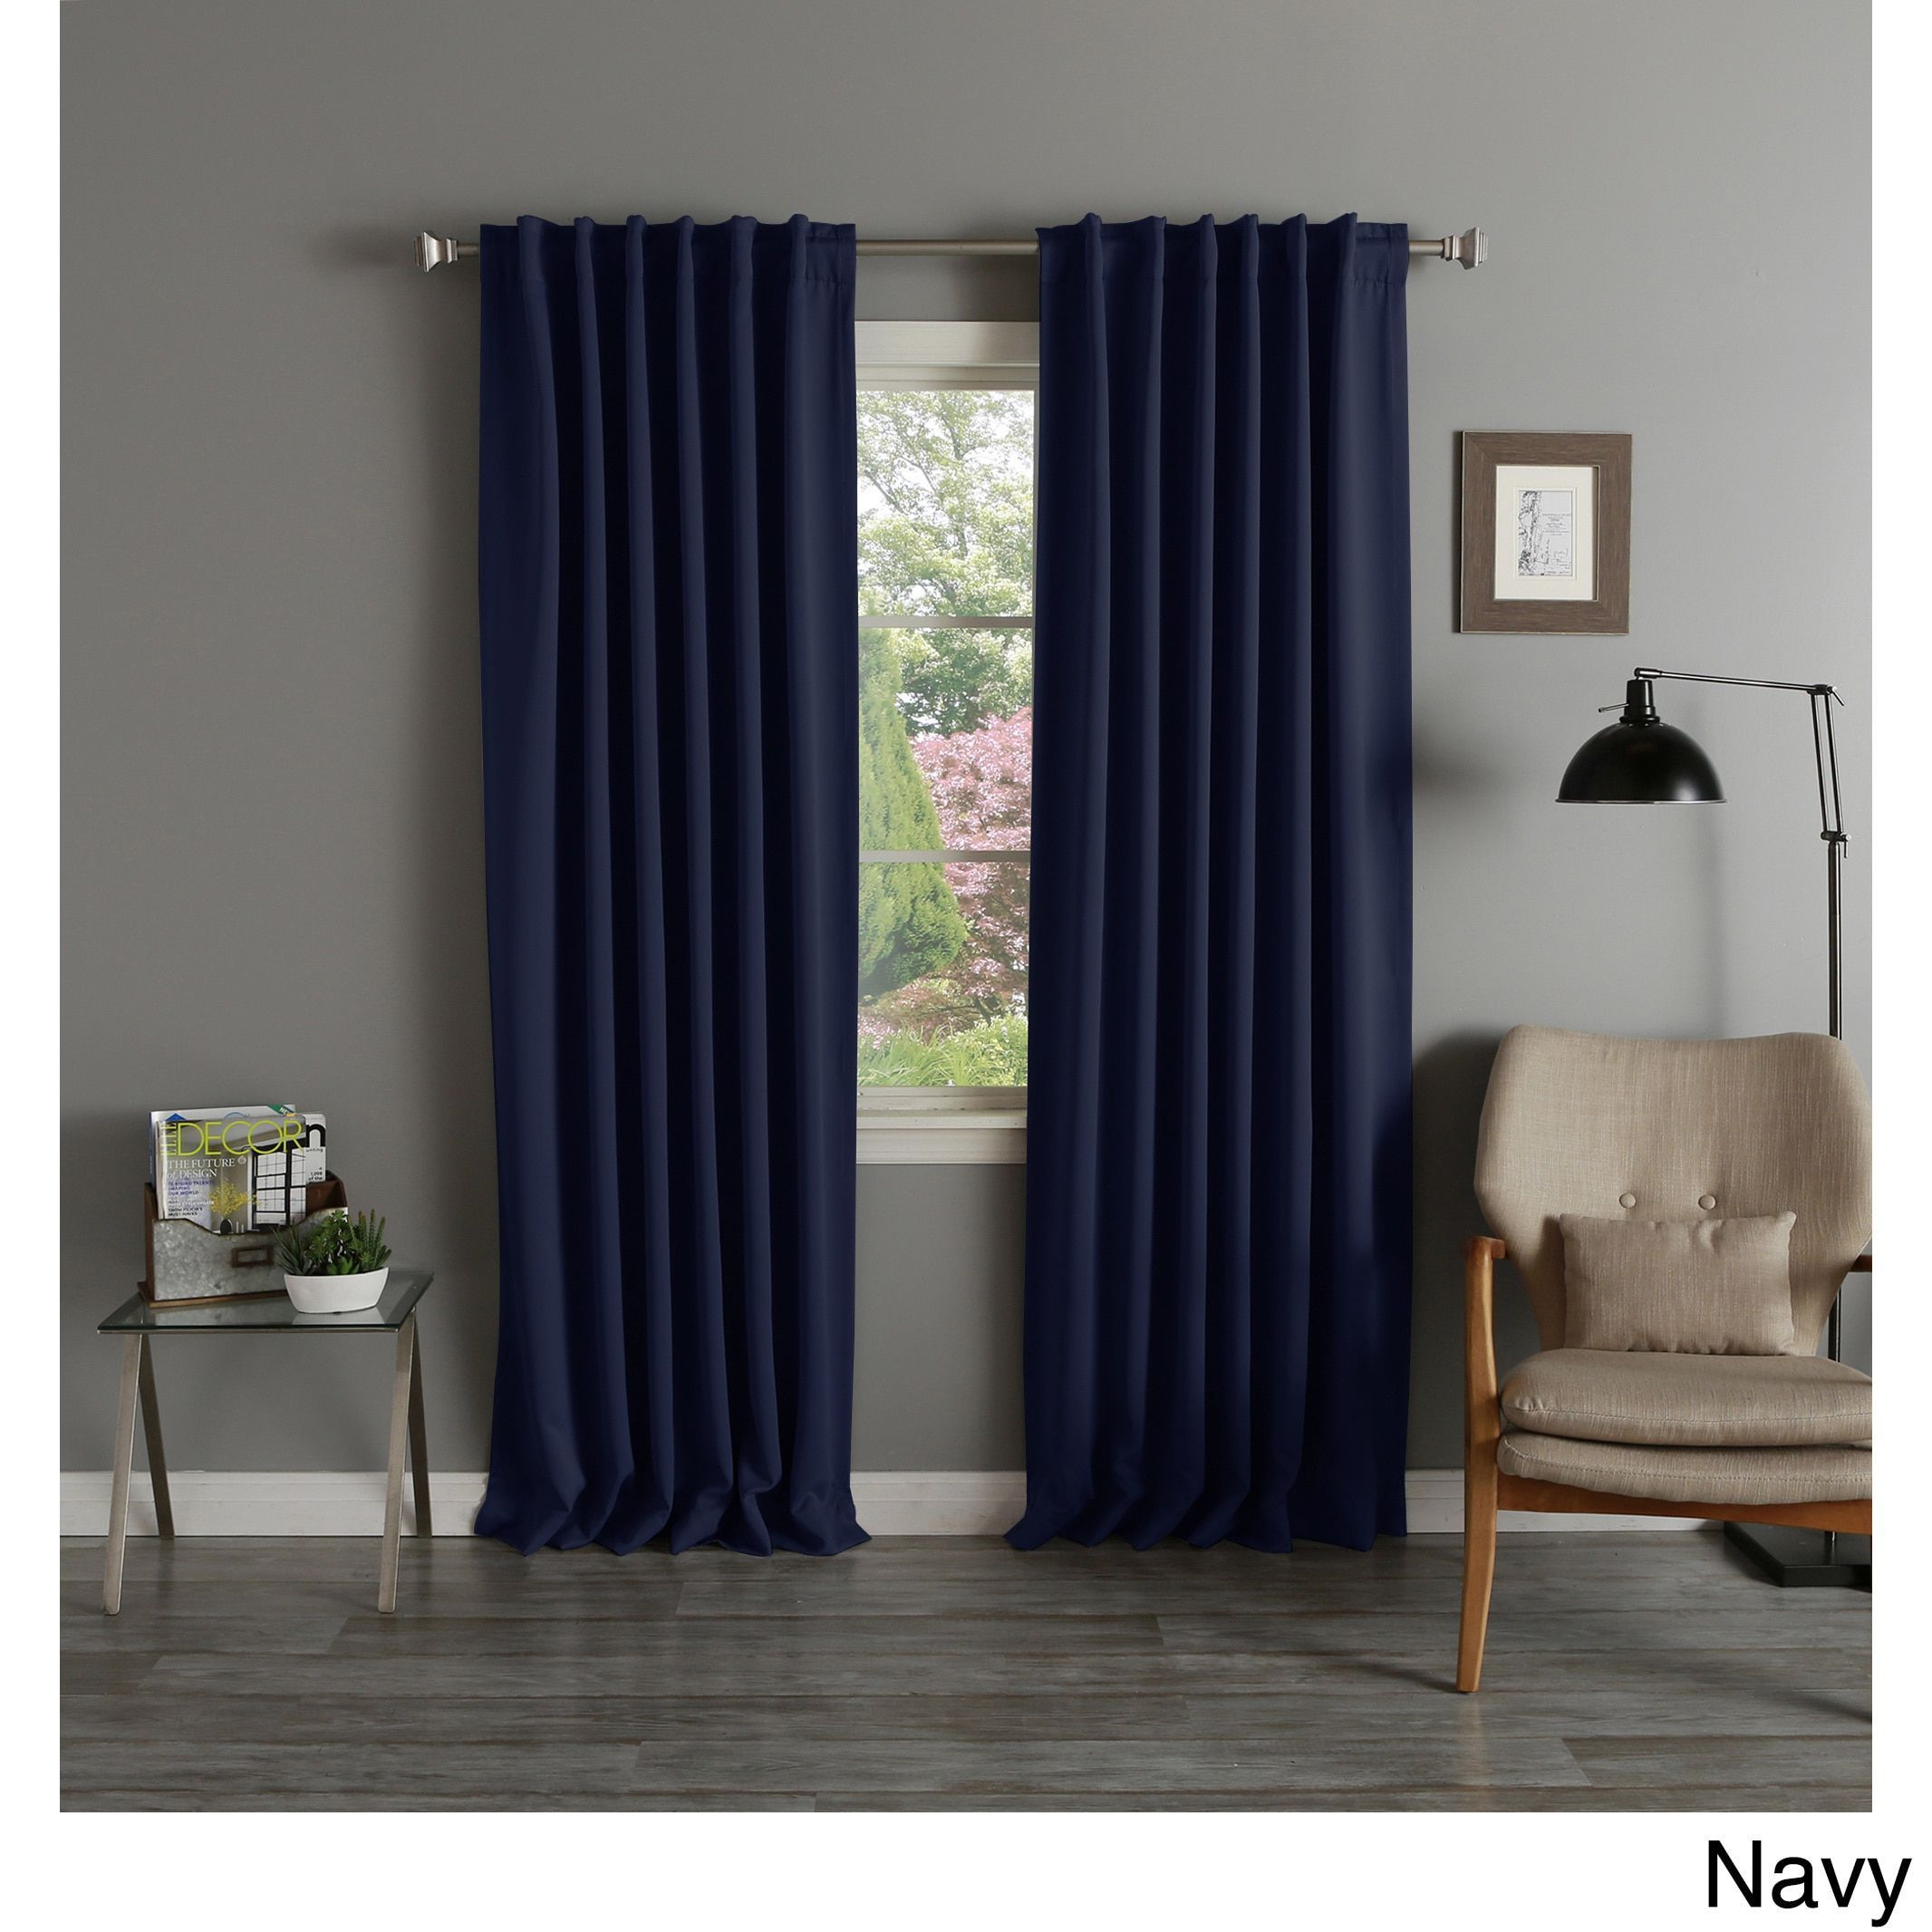 Aurora Home Thermal Rod Pocket 96-inch Blackout Curtain